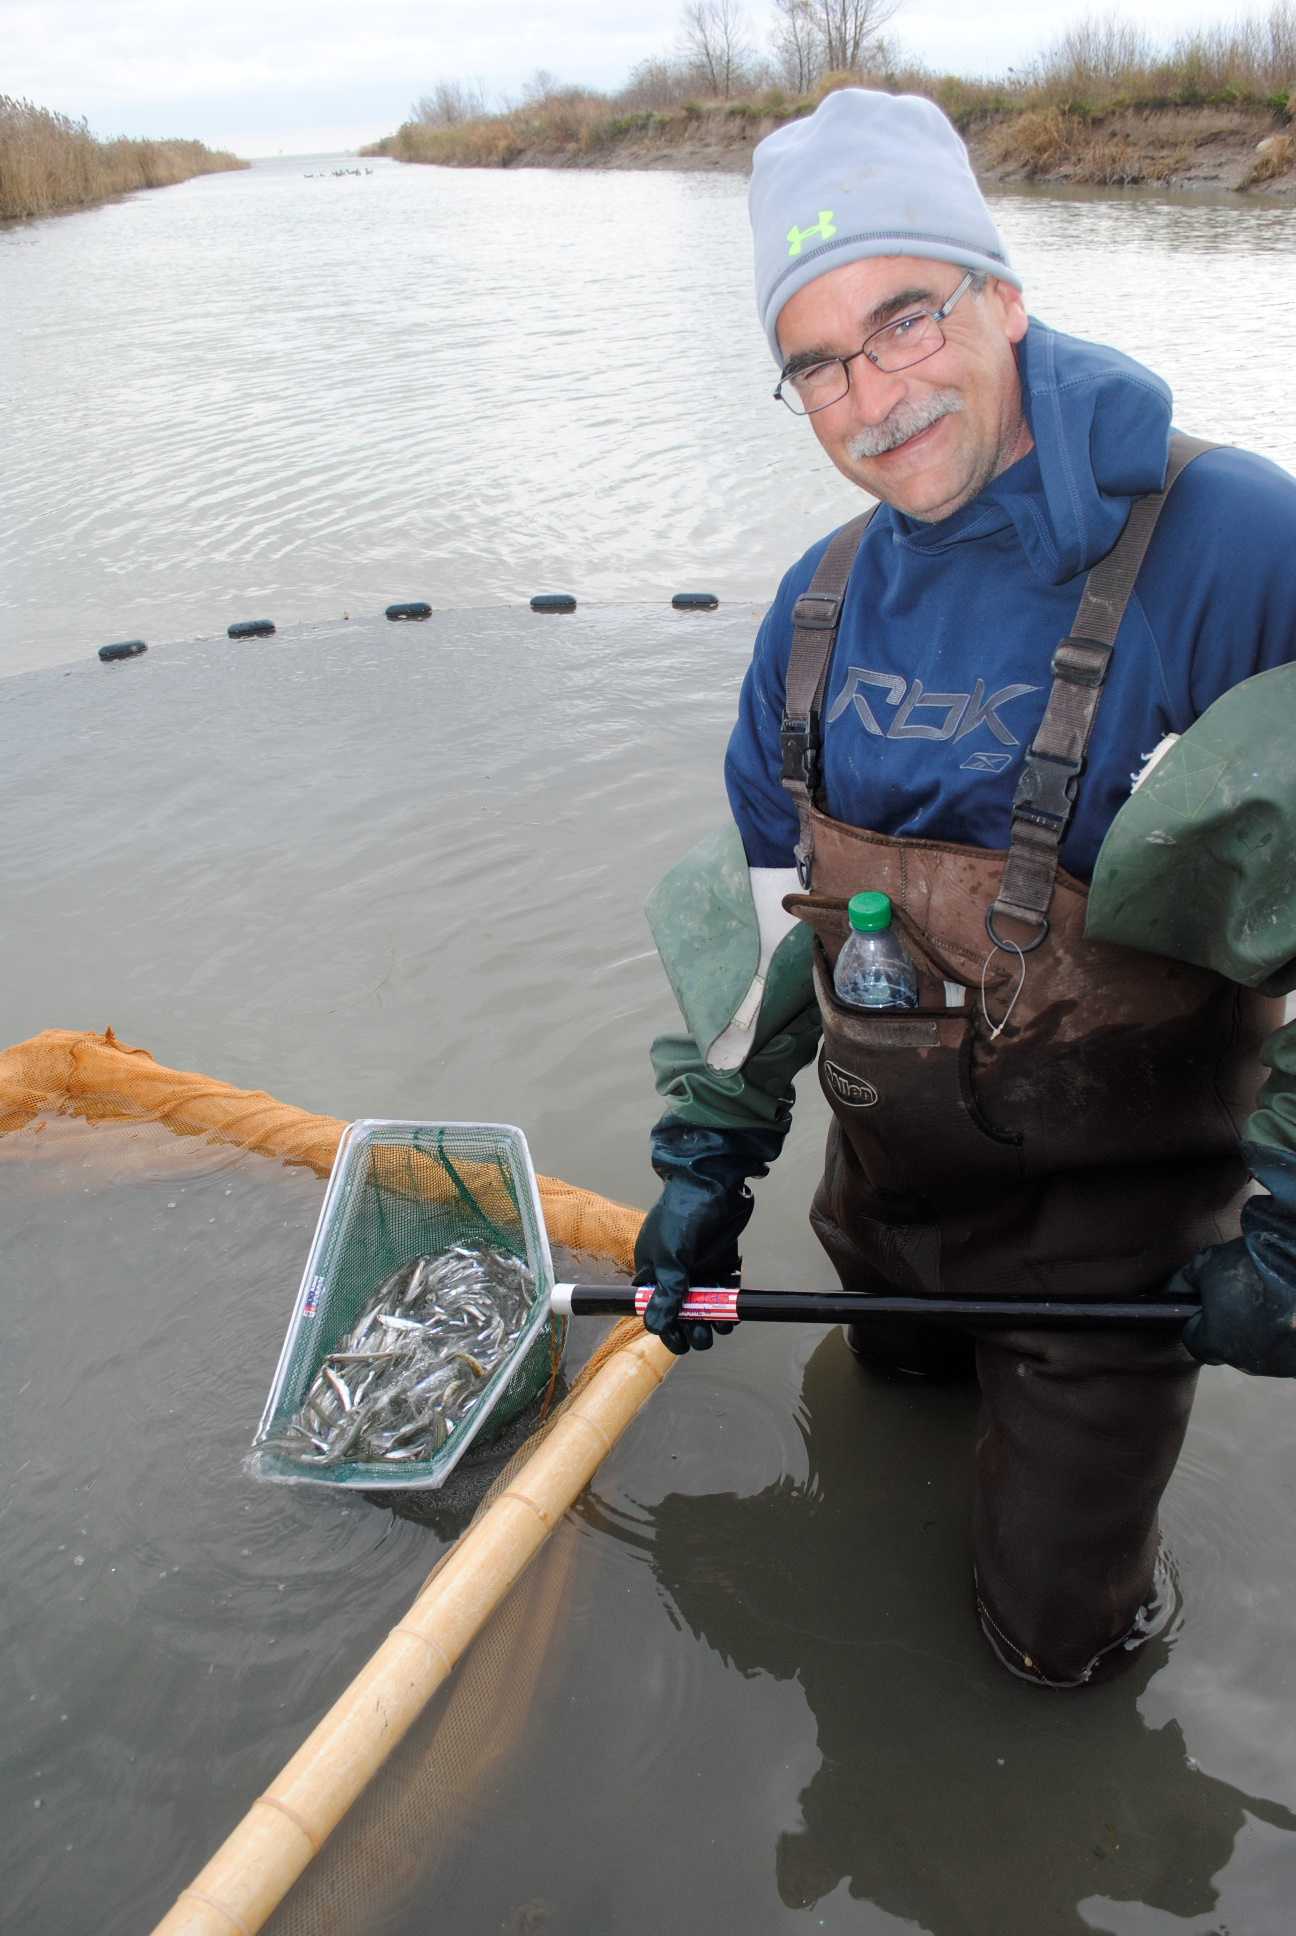 A minnow catcher displays a net full of silvery-looking minnows.